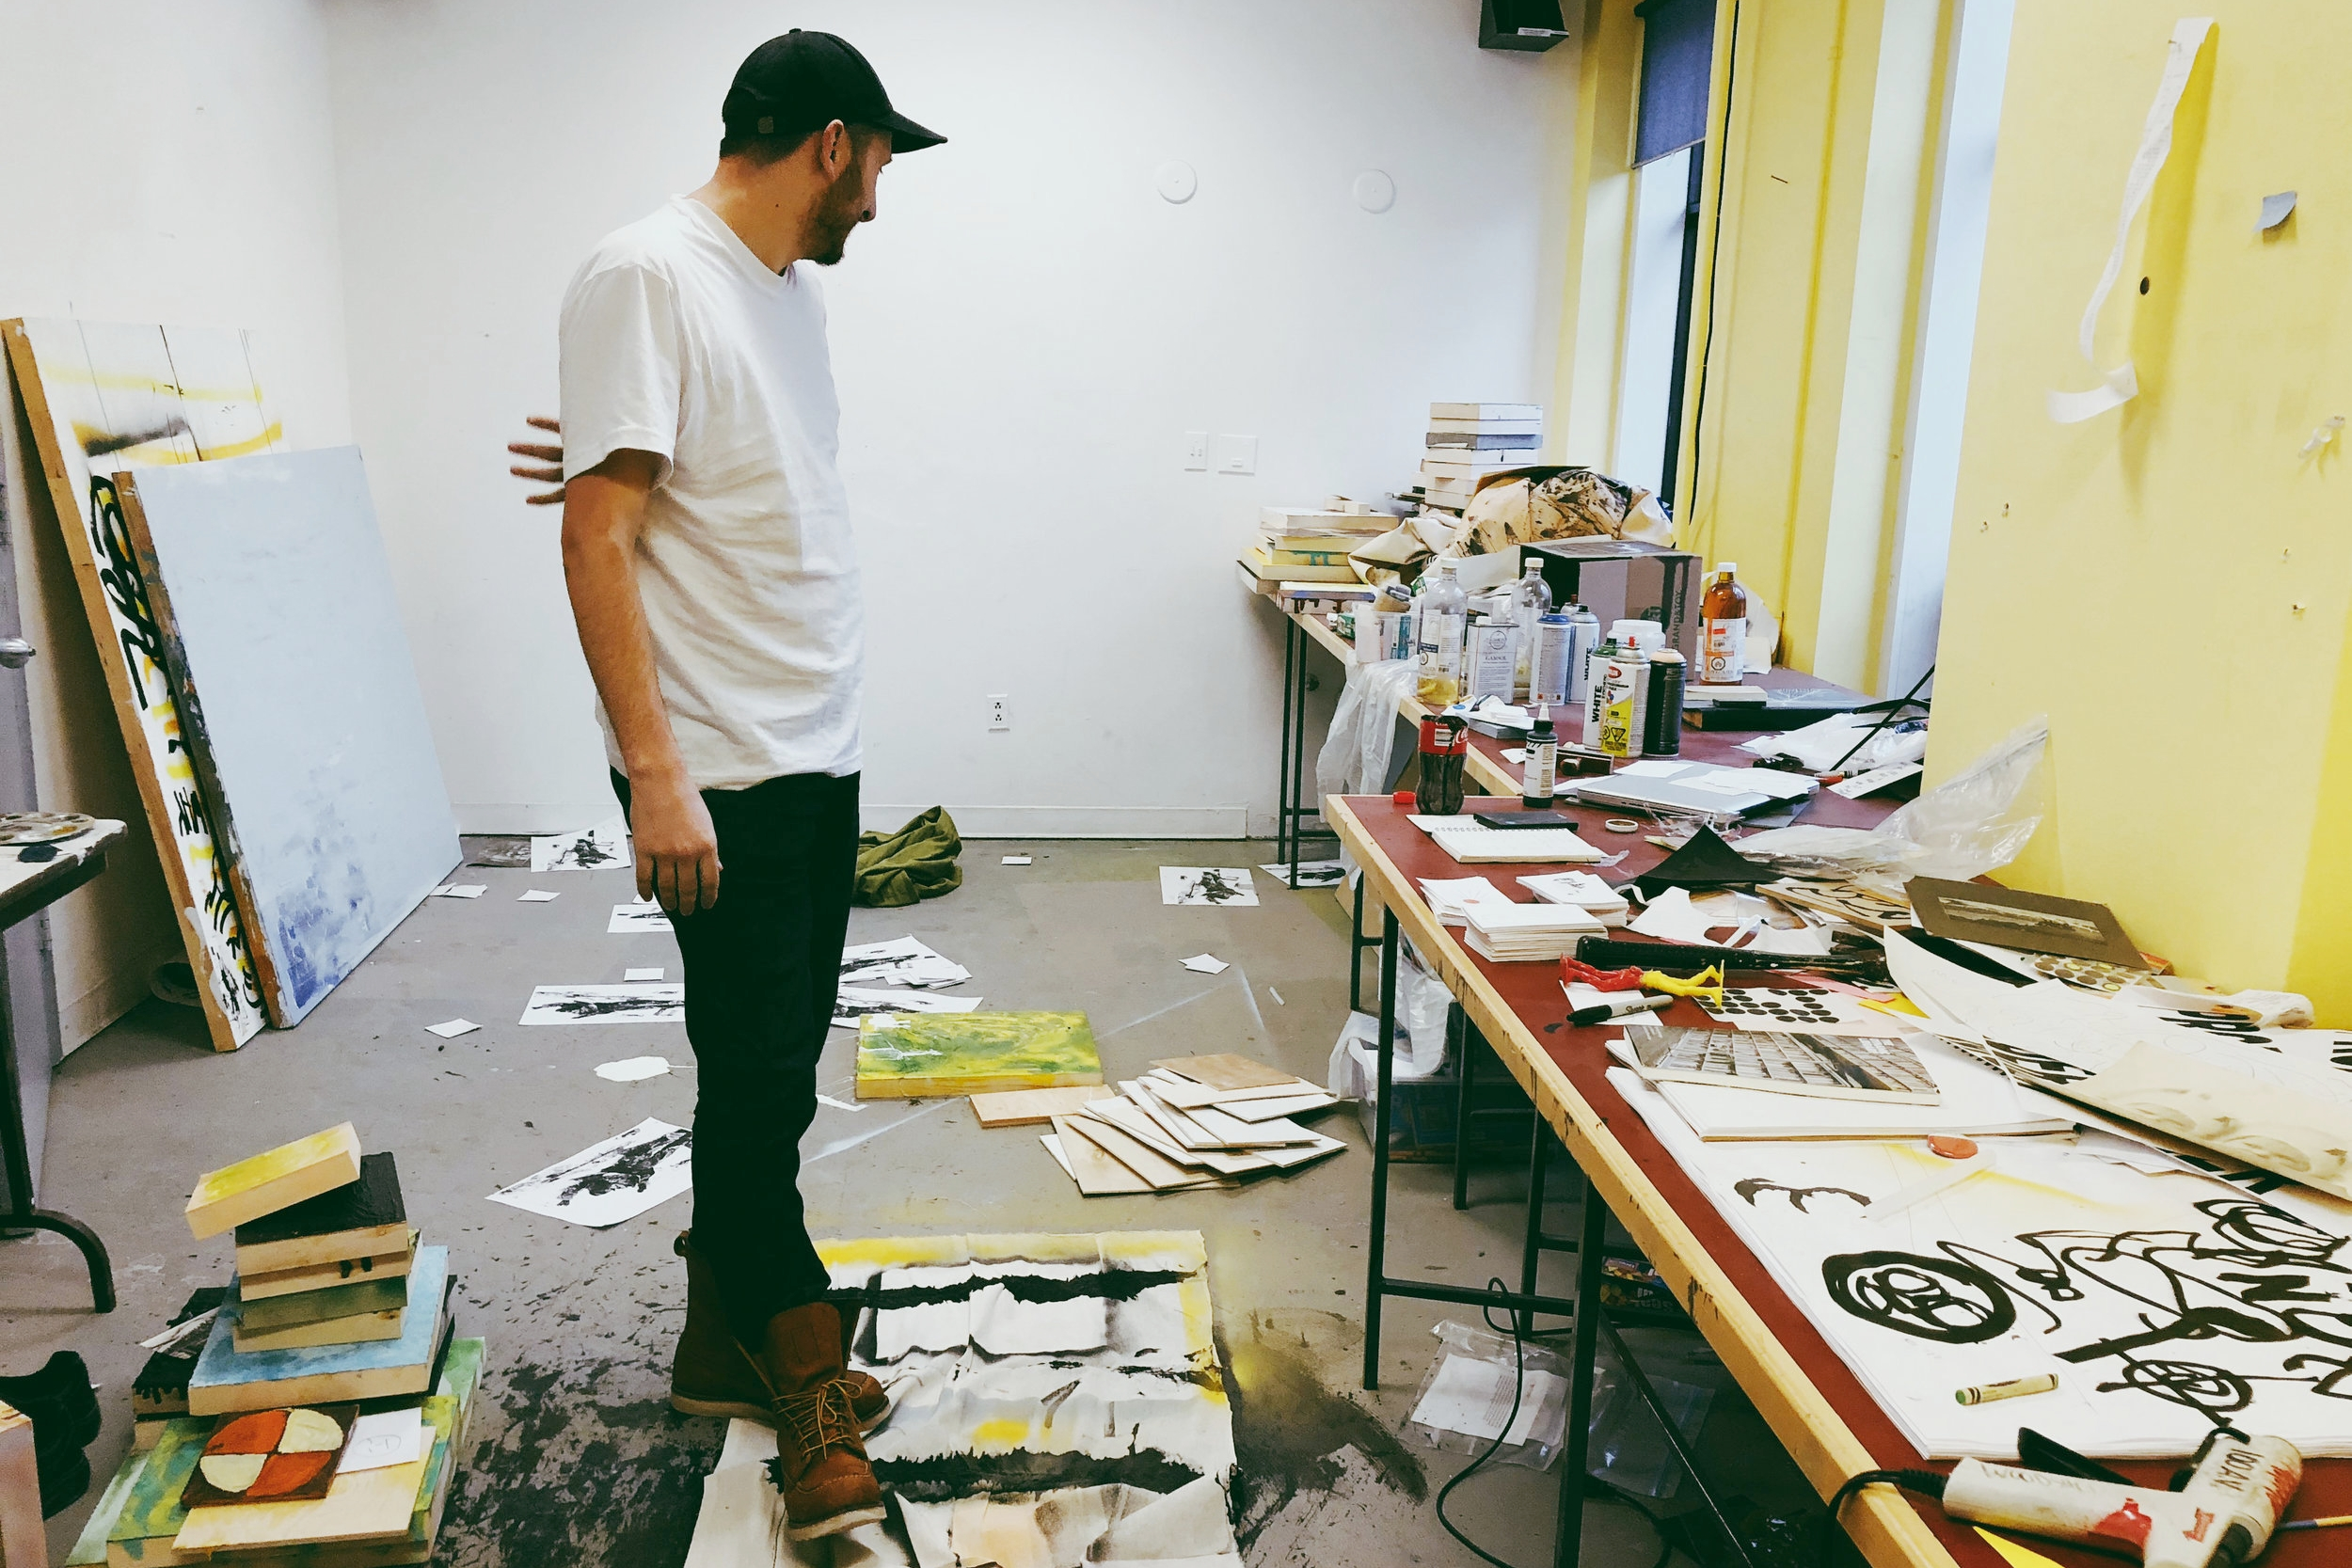 Richardson, a multimedia artist, surveys his works before starting a new term.